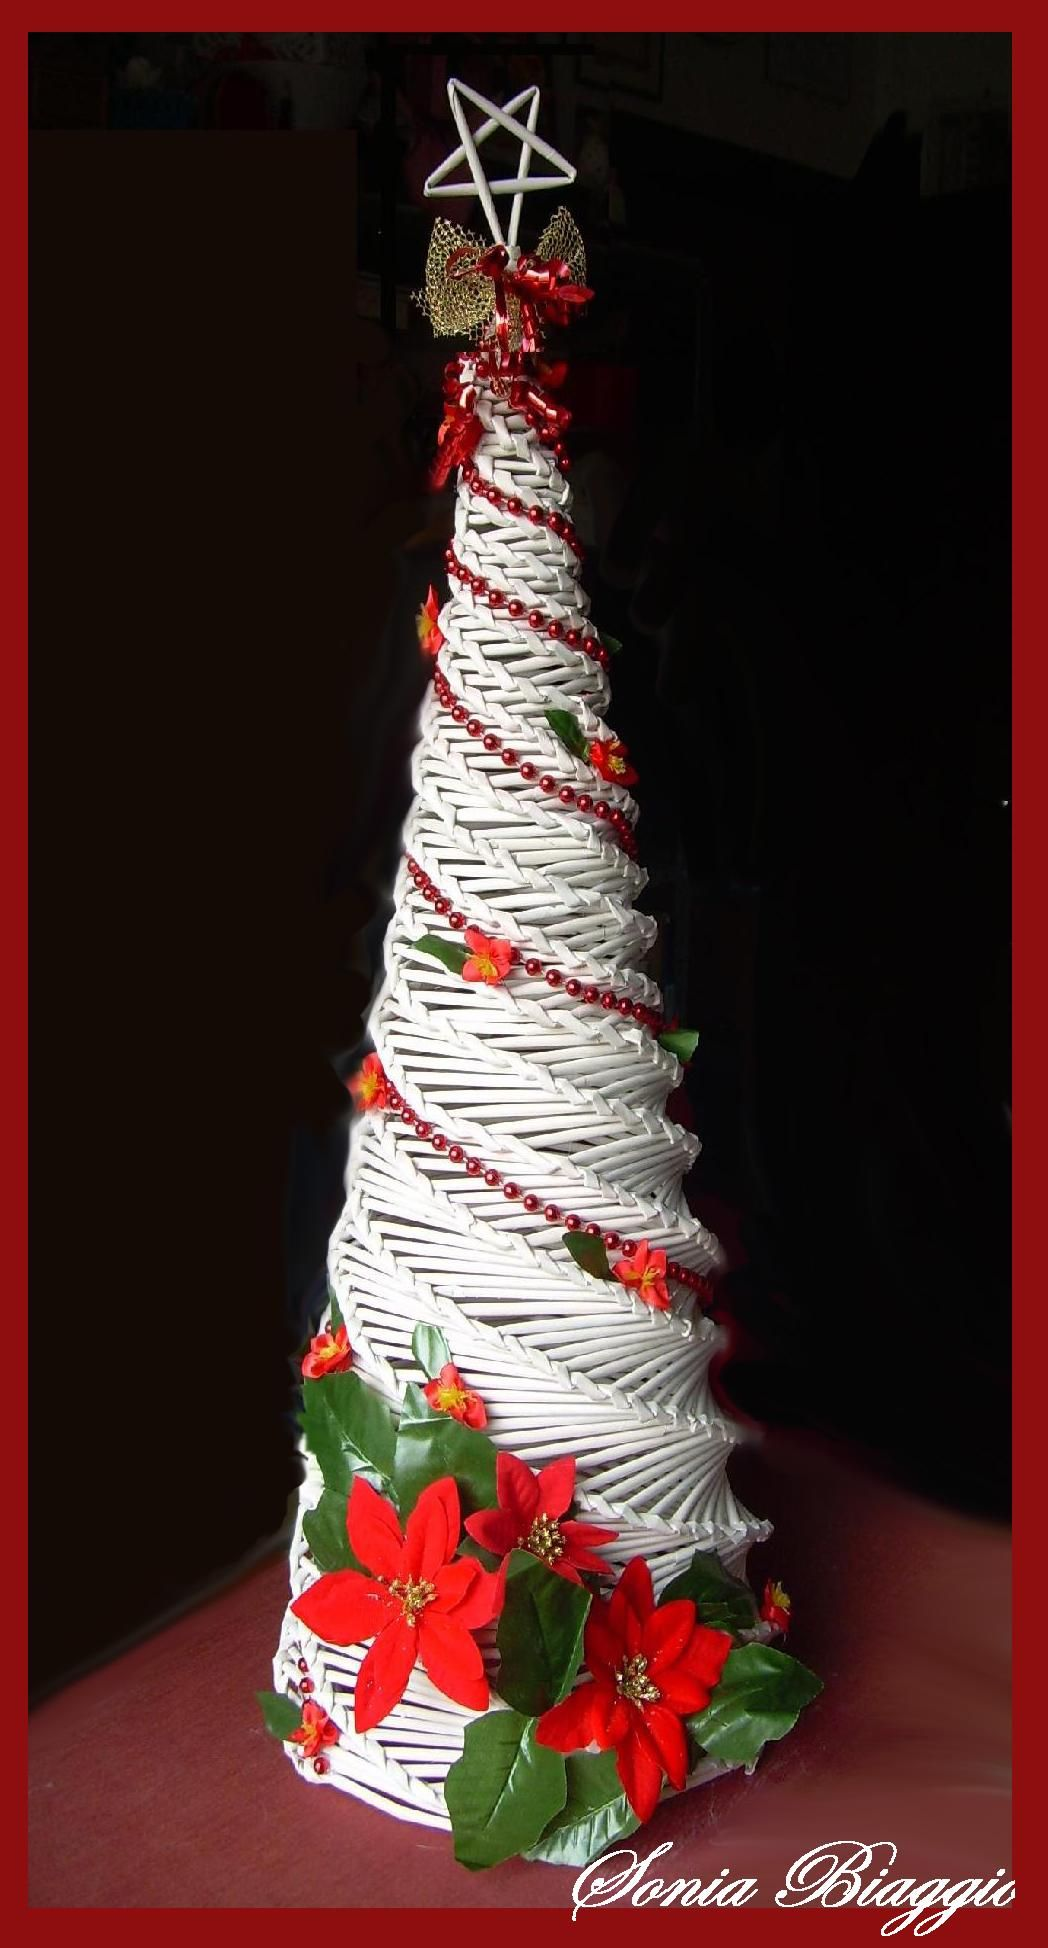 Albero Di Natale Con Cannucce Di Carta.Albero Con Cannucce Di Carta Christmas Decorations Christmas Projects Christmas Ornaments